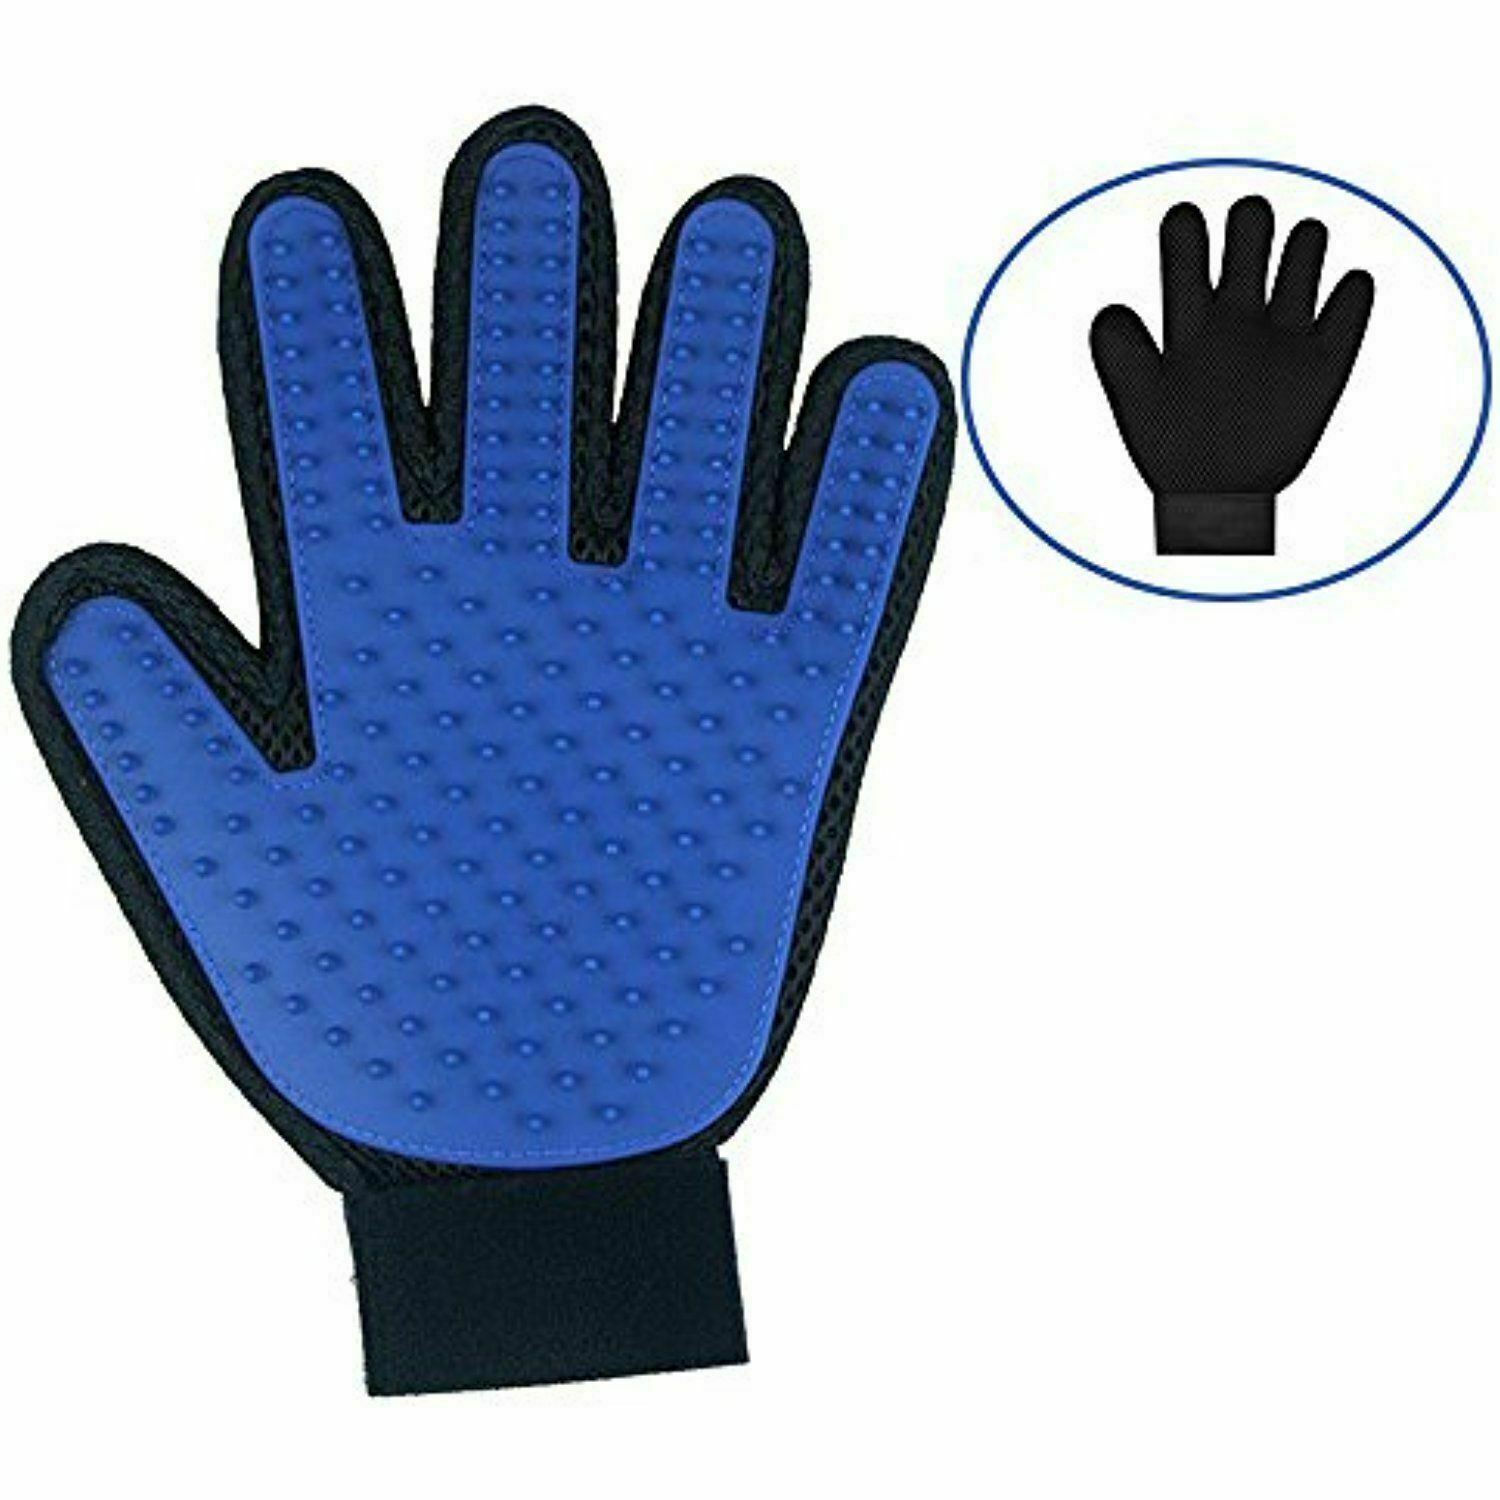 New LEFT HAND Dog Pet Grooming Glove & Hair Remover with Gentle Deshedding Brush Brushes, Combs & Rakes